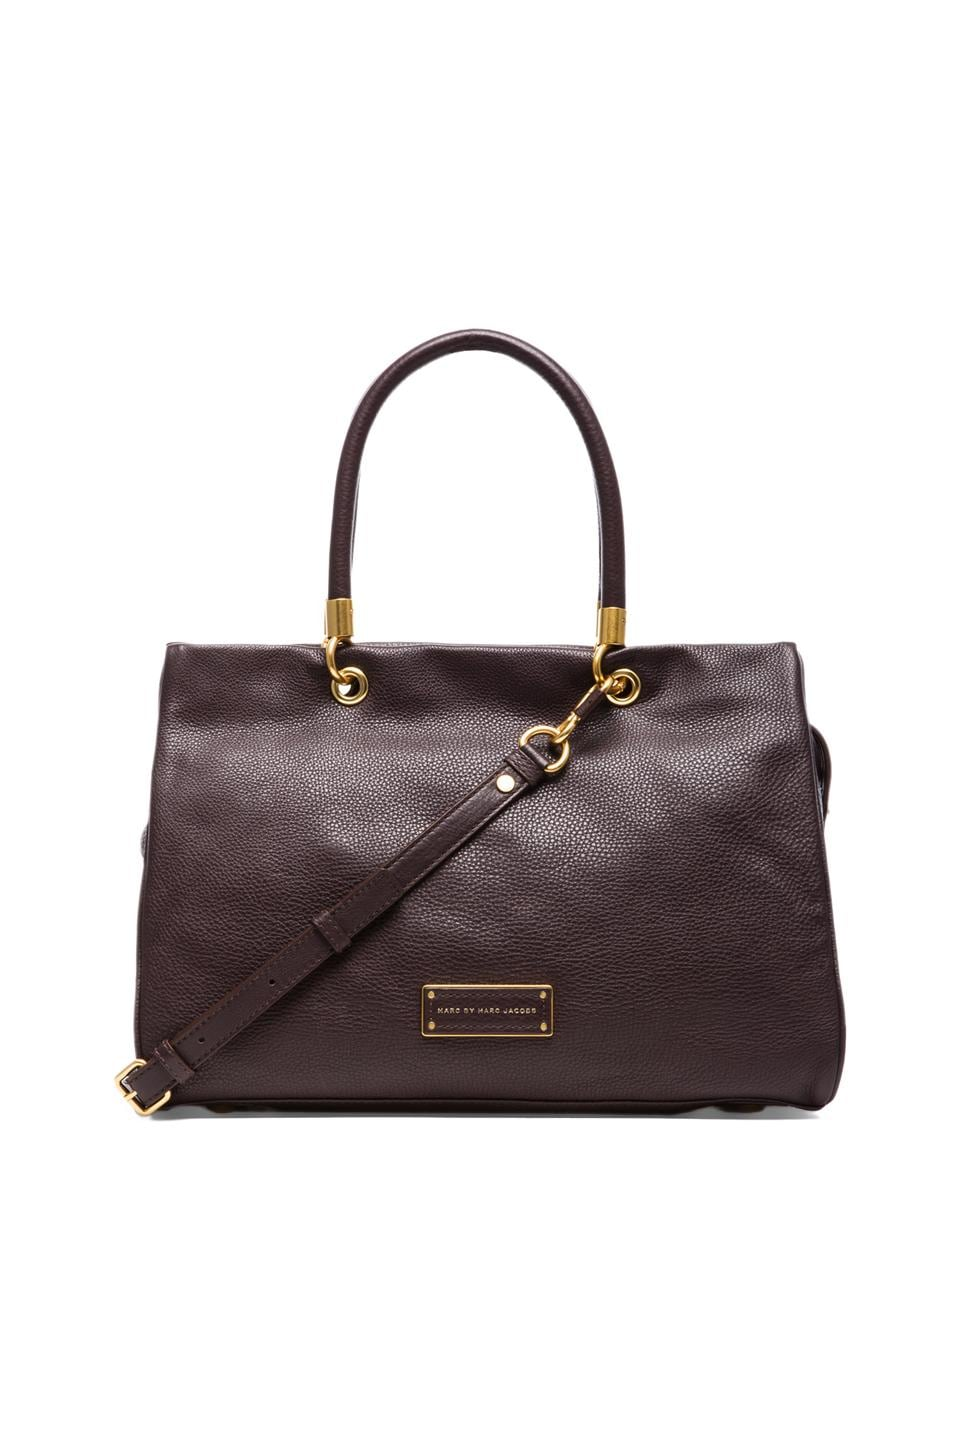 Marc by Marc Jacobs Too Hot To Handle Tote in Carob Brown